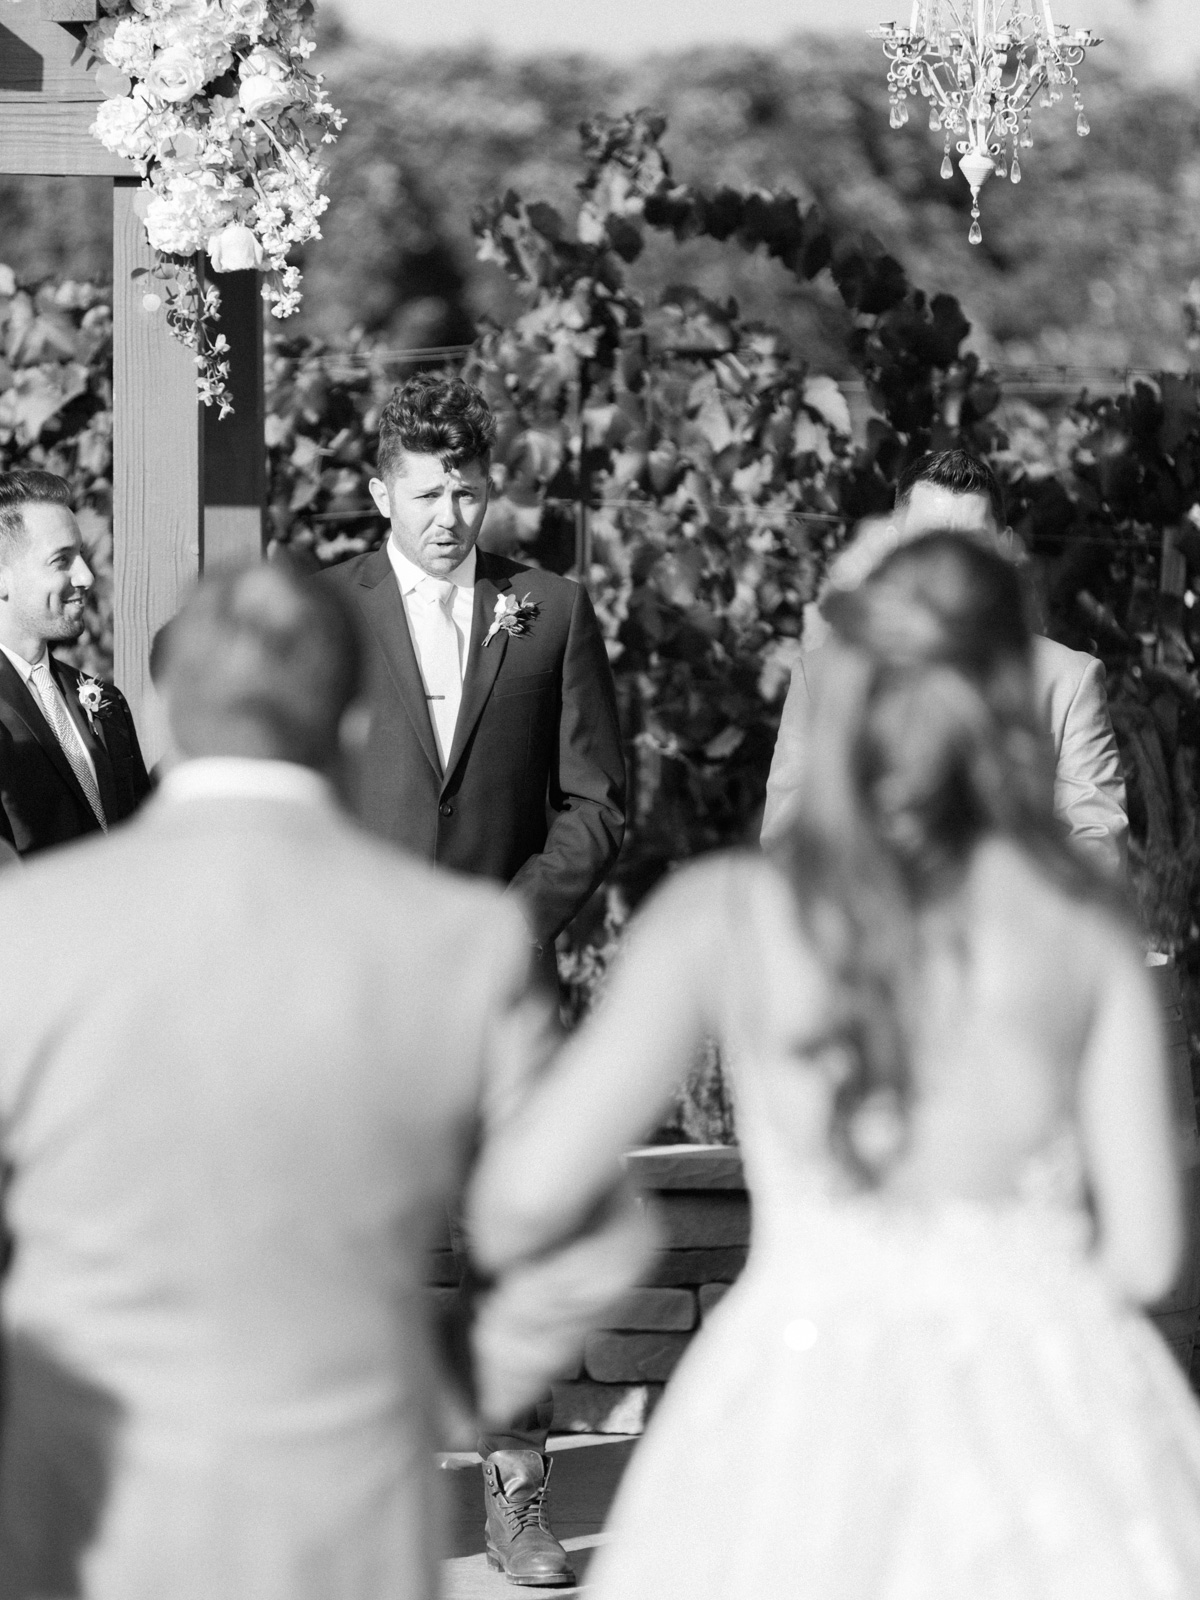 Father walking daughter down the aisle  Harrison & Jocelyne's gorgeous Temecula wedding at Wiens Family Cellars captured by Betsy & John   Temecula Wedding Photographers